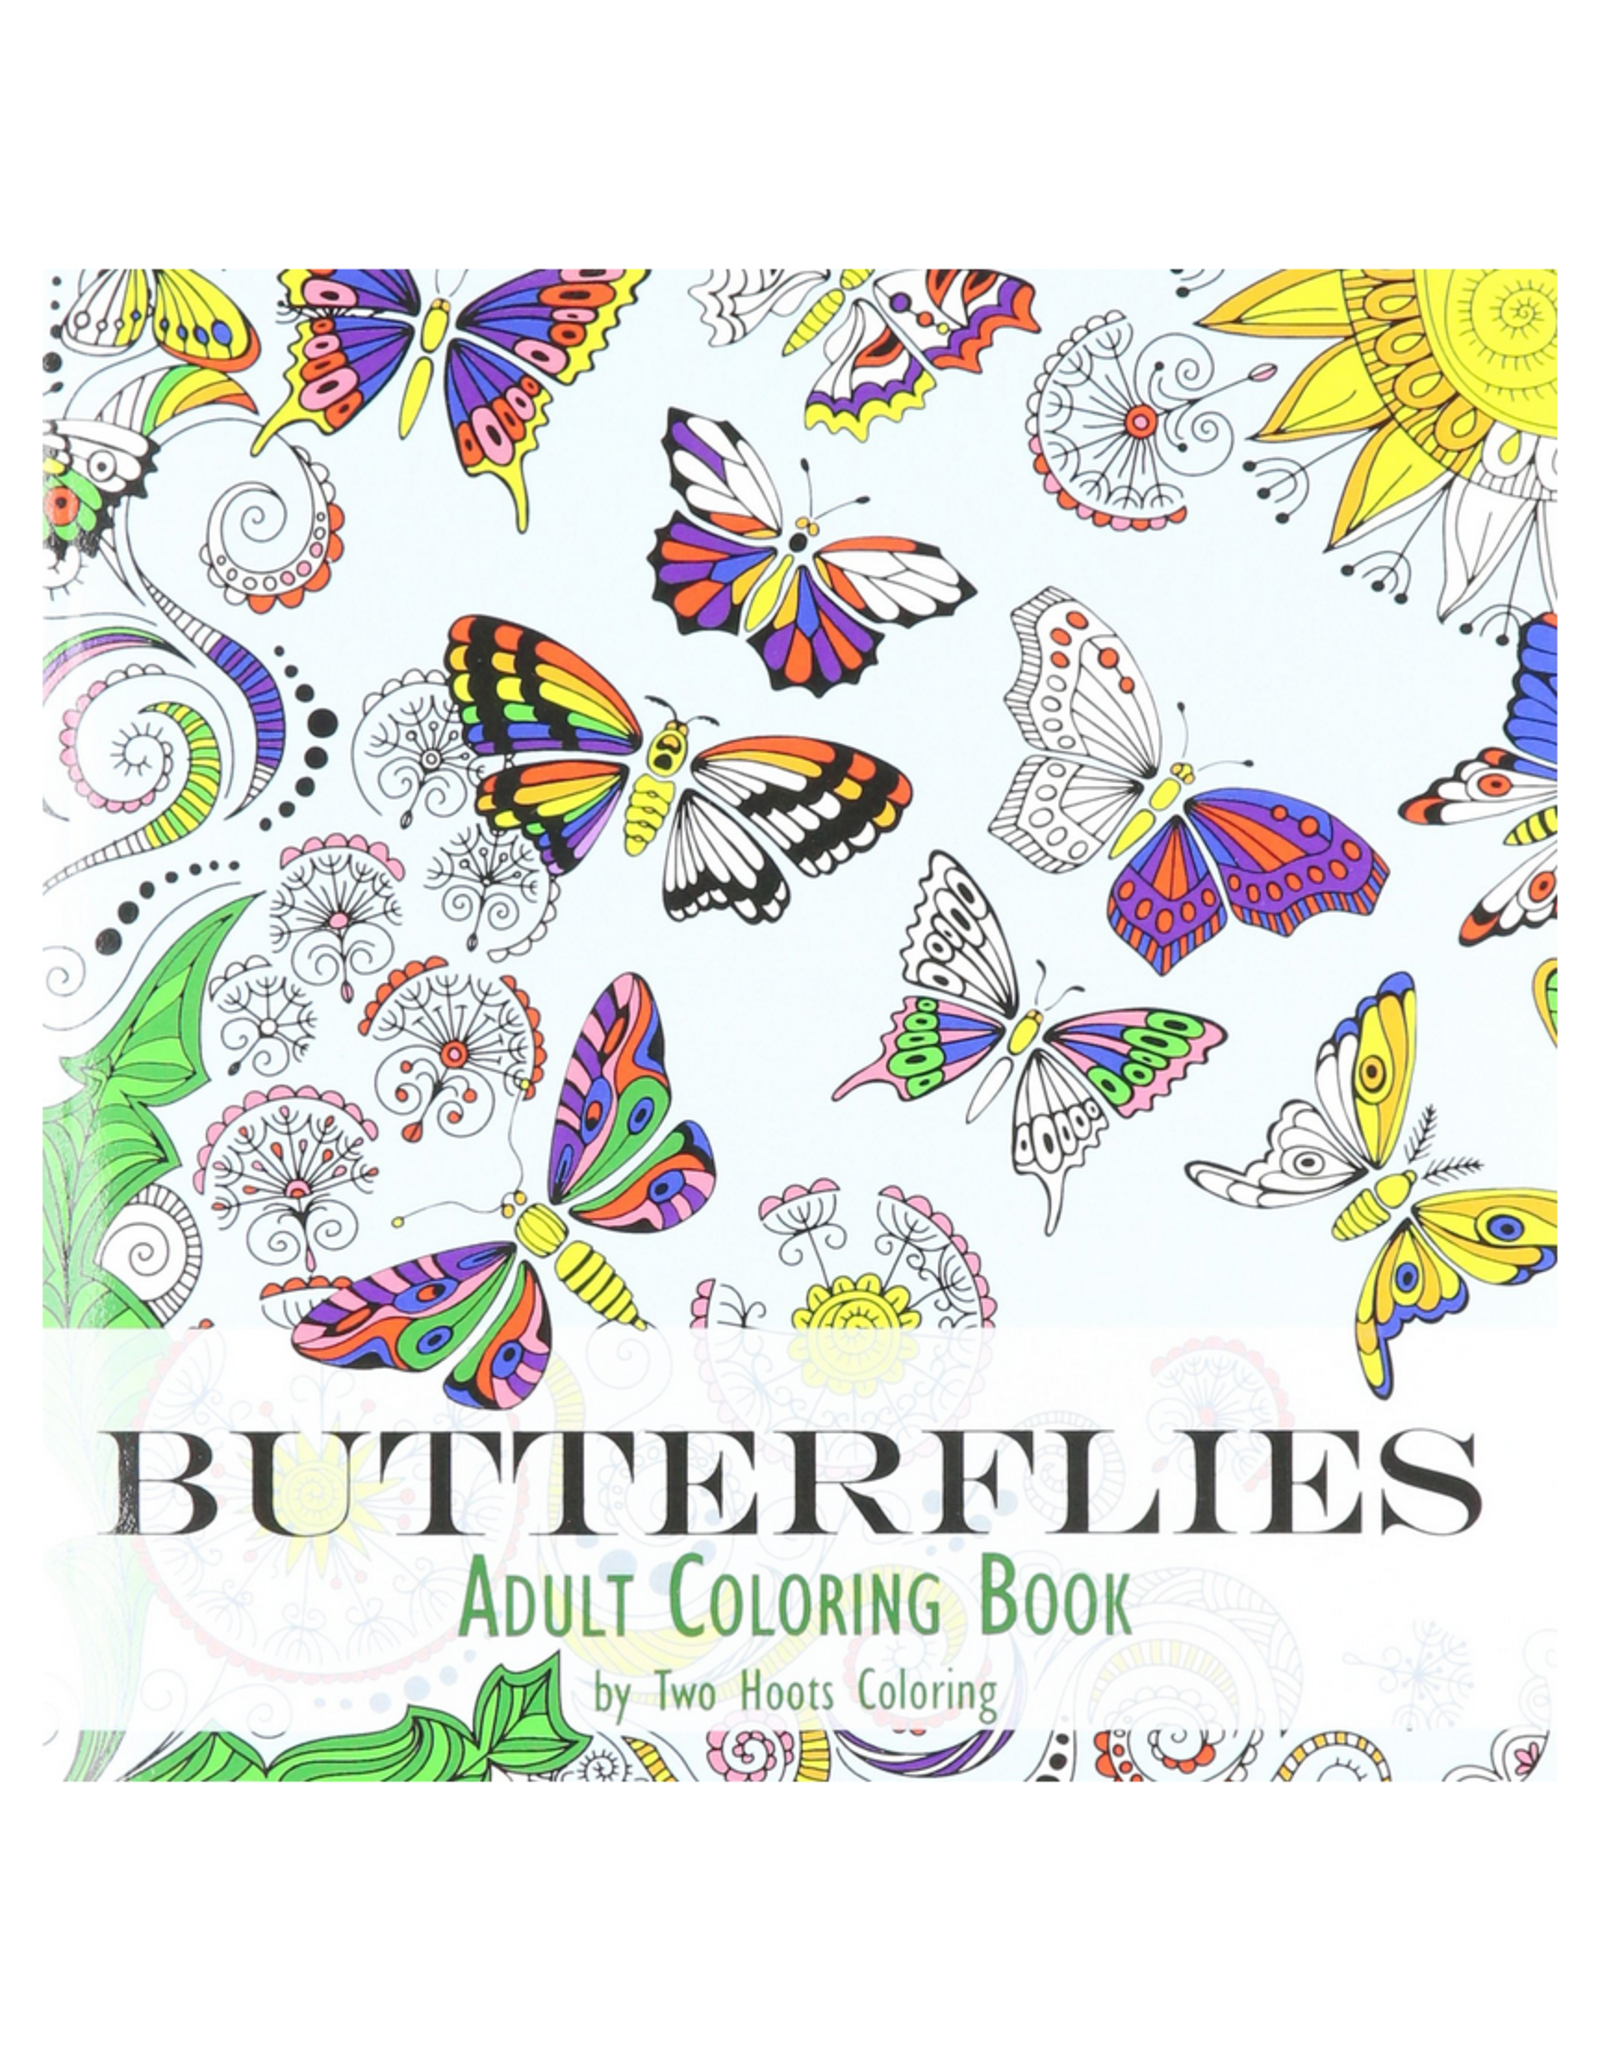 Two Hoots Coloring Colouring Book for Adults, Butterflies